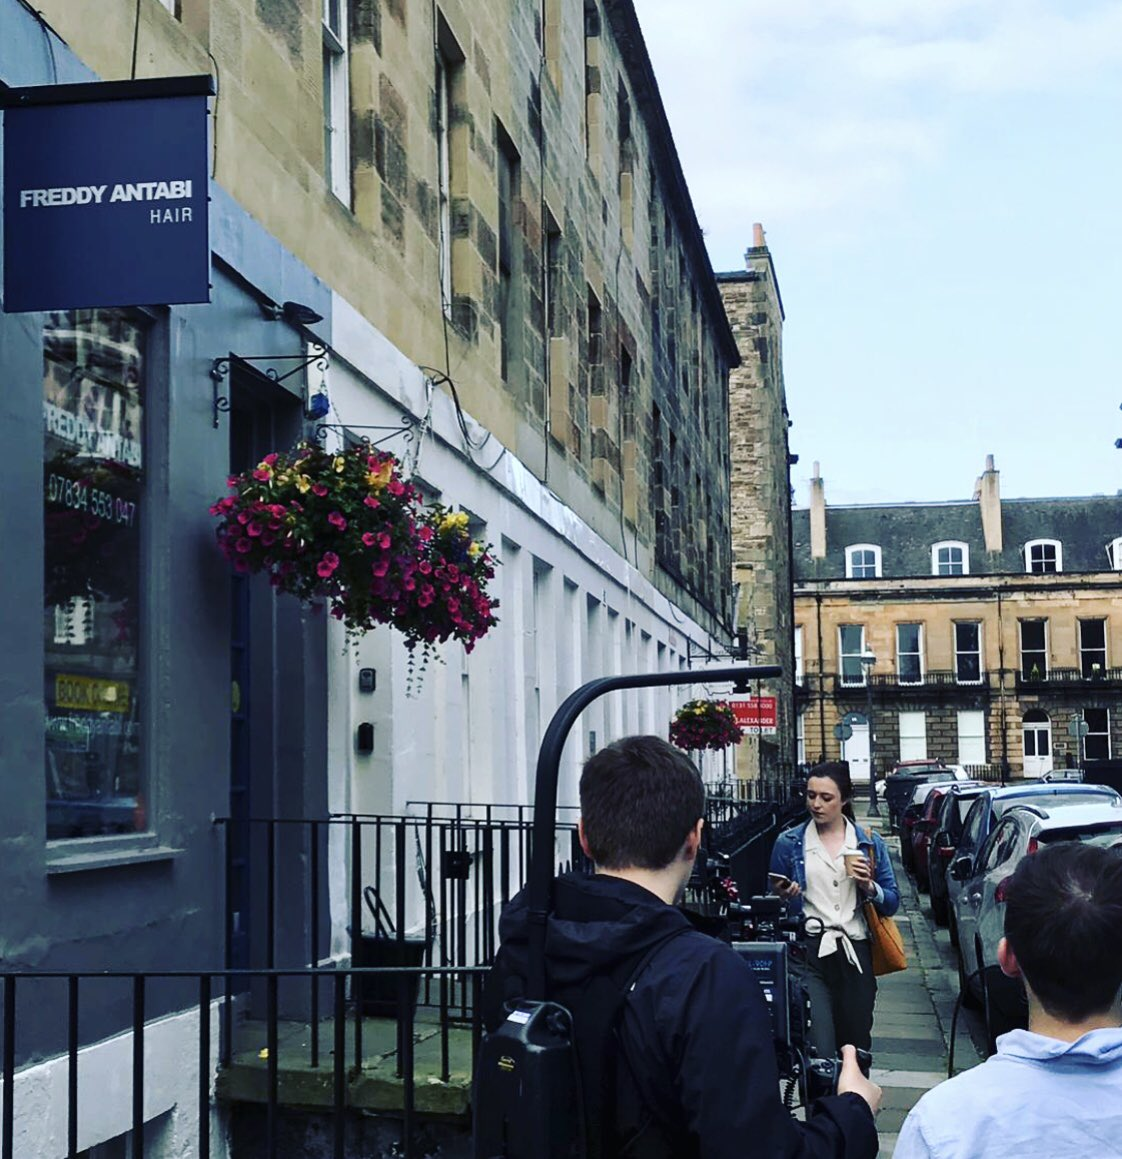 There was some filming taking place in William Street this morning. 🎥 We've heard from our friends at @hightidemedia it's something exciting for @edfringe 🎉 . . . #edinburghswestend #edinburghwows #edinburgh #thisisedinburgh #hiddengems #takeacloserlook